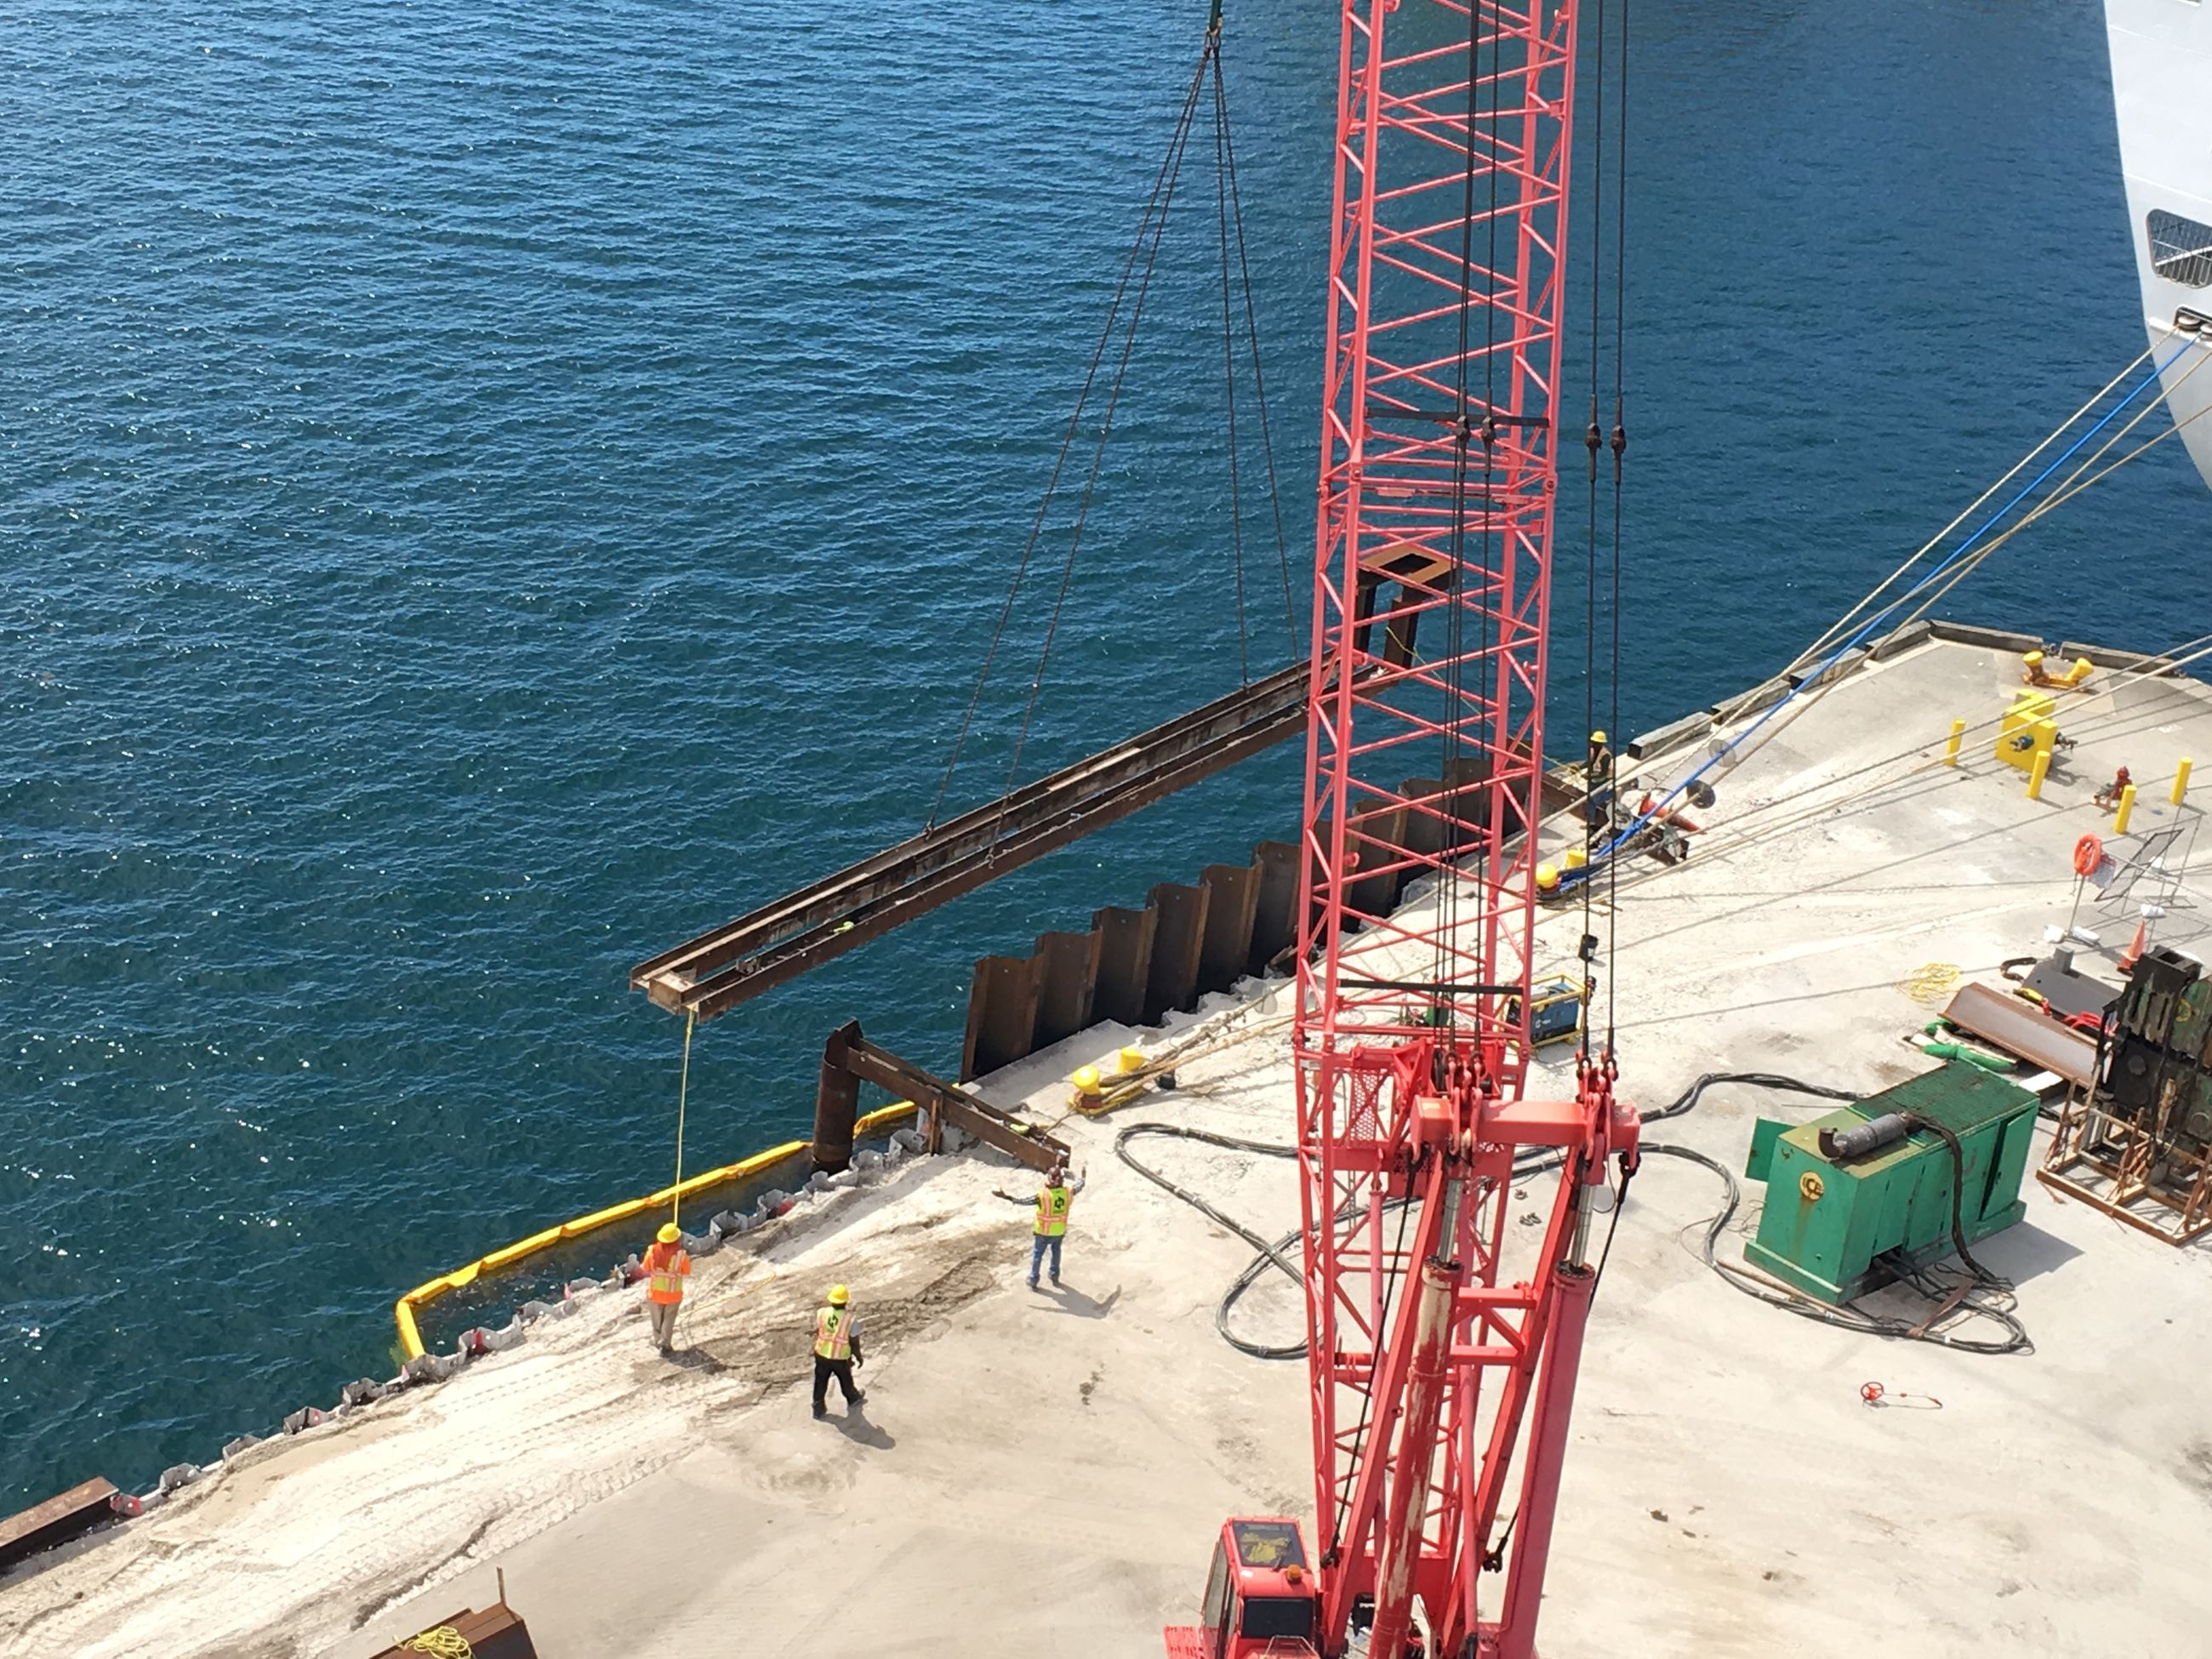 New steel sheet pile installed in front of existing sheet pile